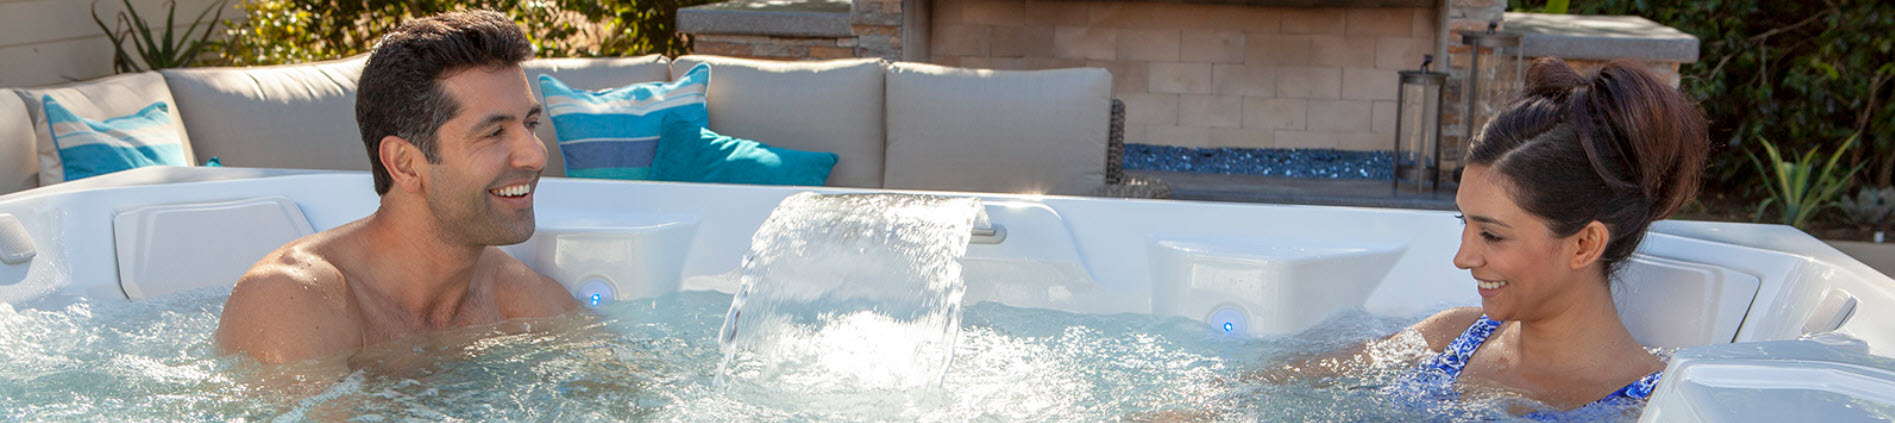 Thinking About Buying a Portable Spa, Take a Test Soak – Hot Tubs Fenton